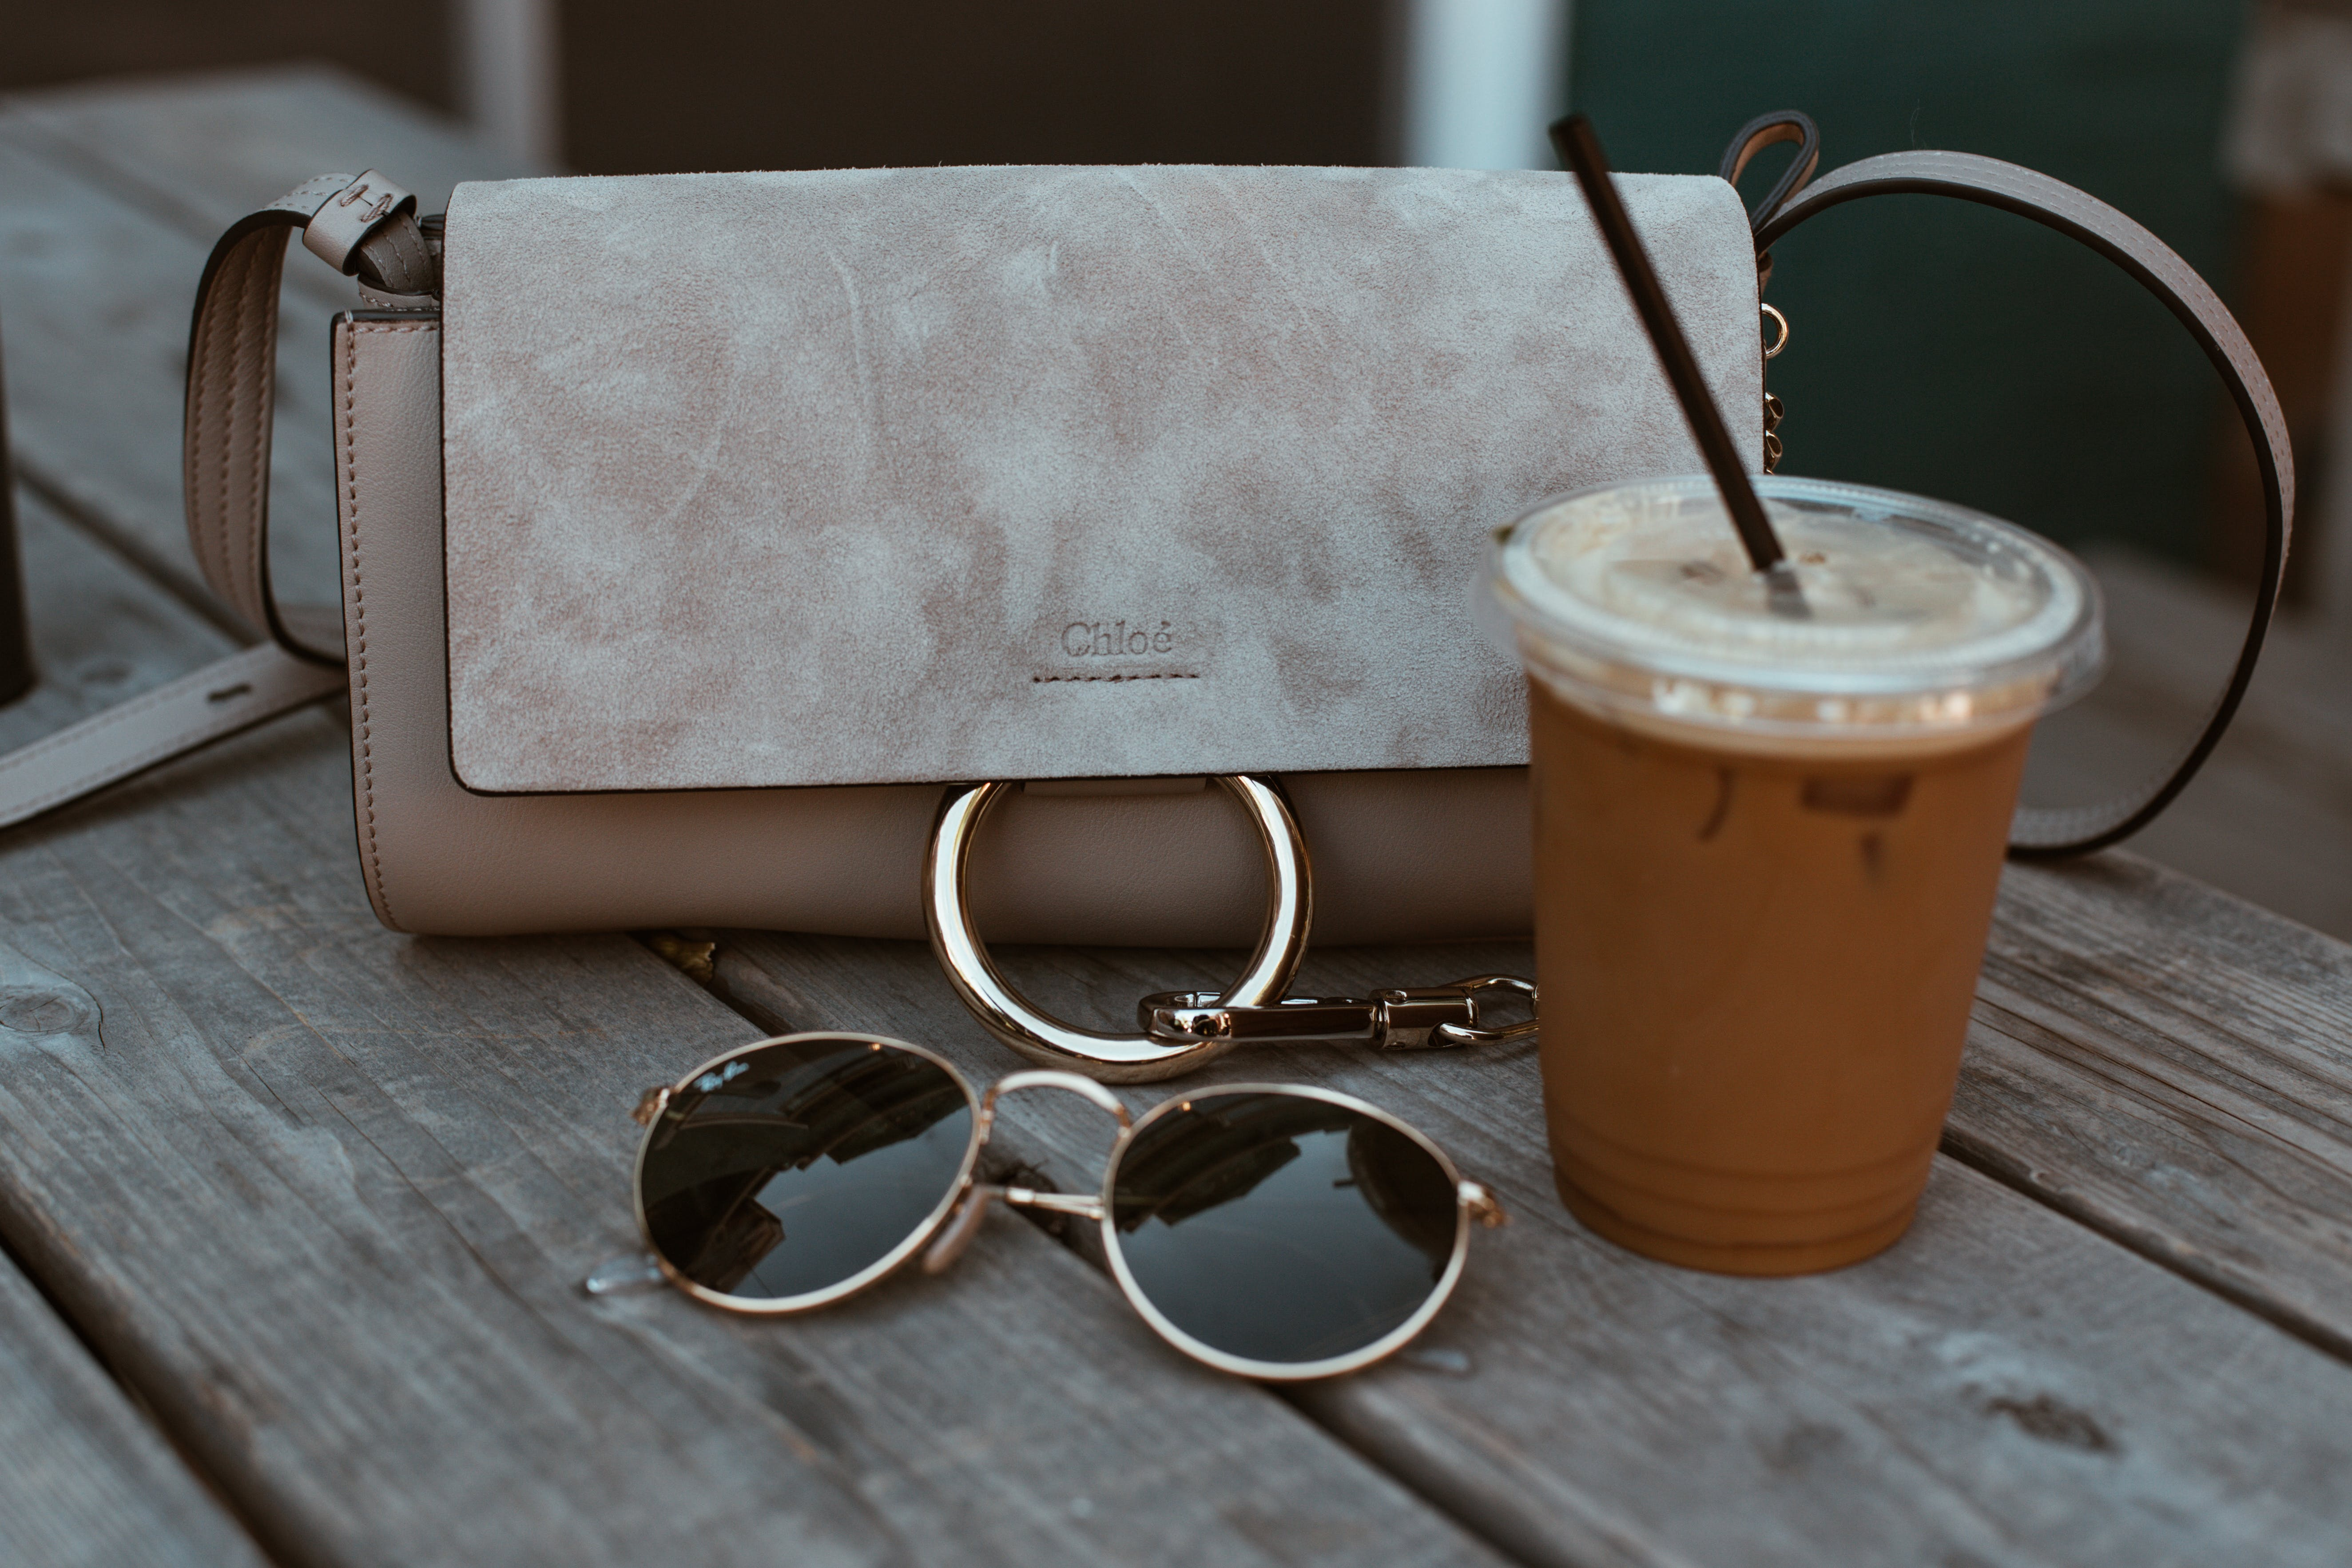 Leather Crossbody Bag Beside Drink And Sunglasses